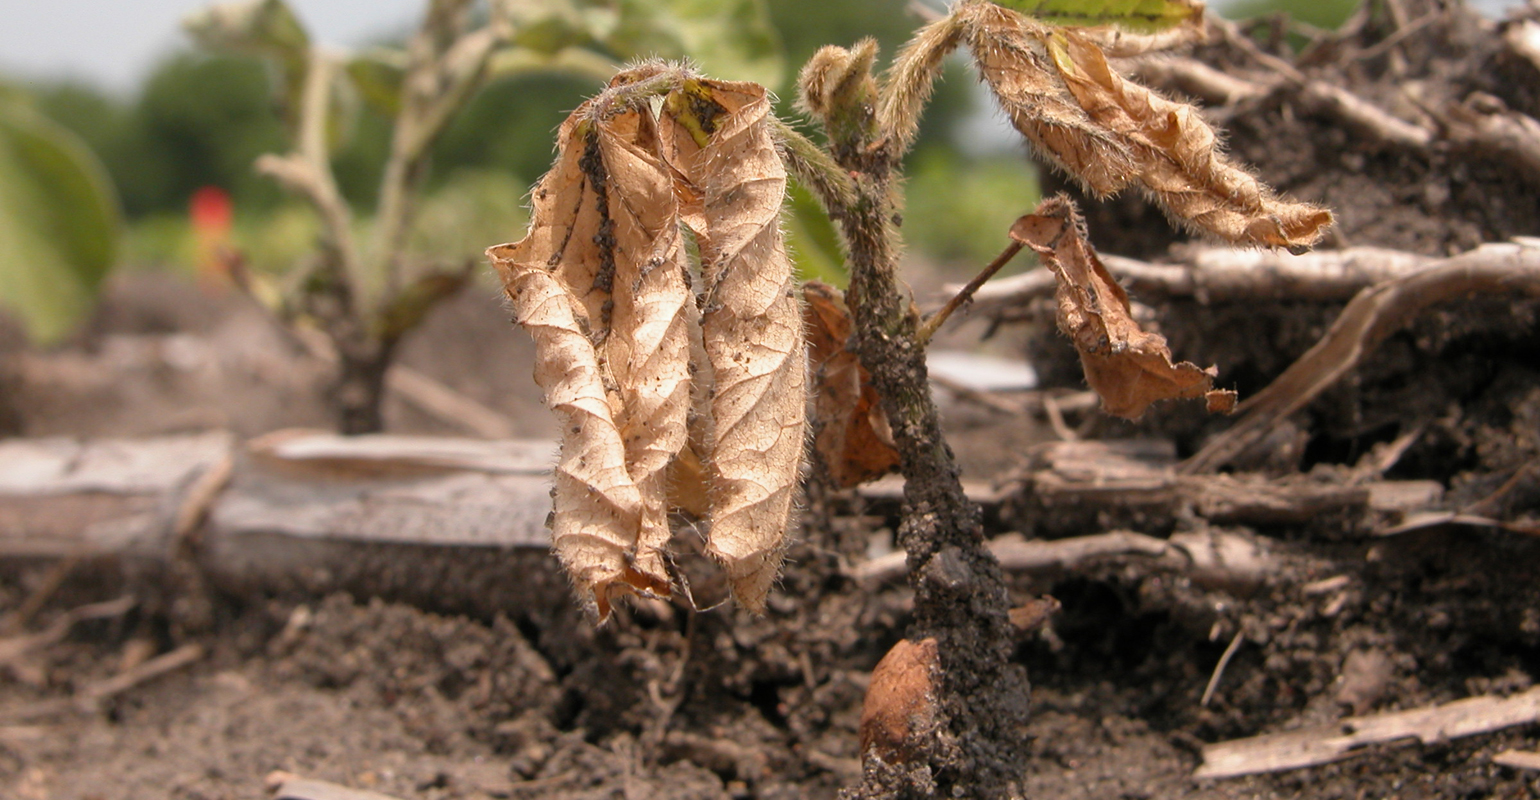 PHYTOPHTHORA shown on early growth of soybean plant